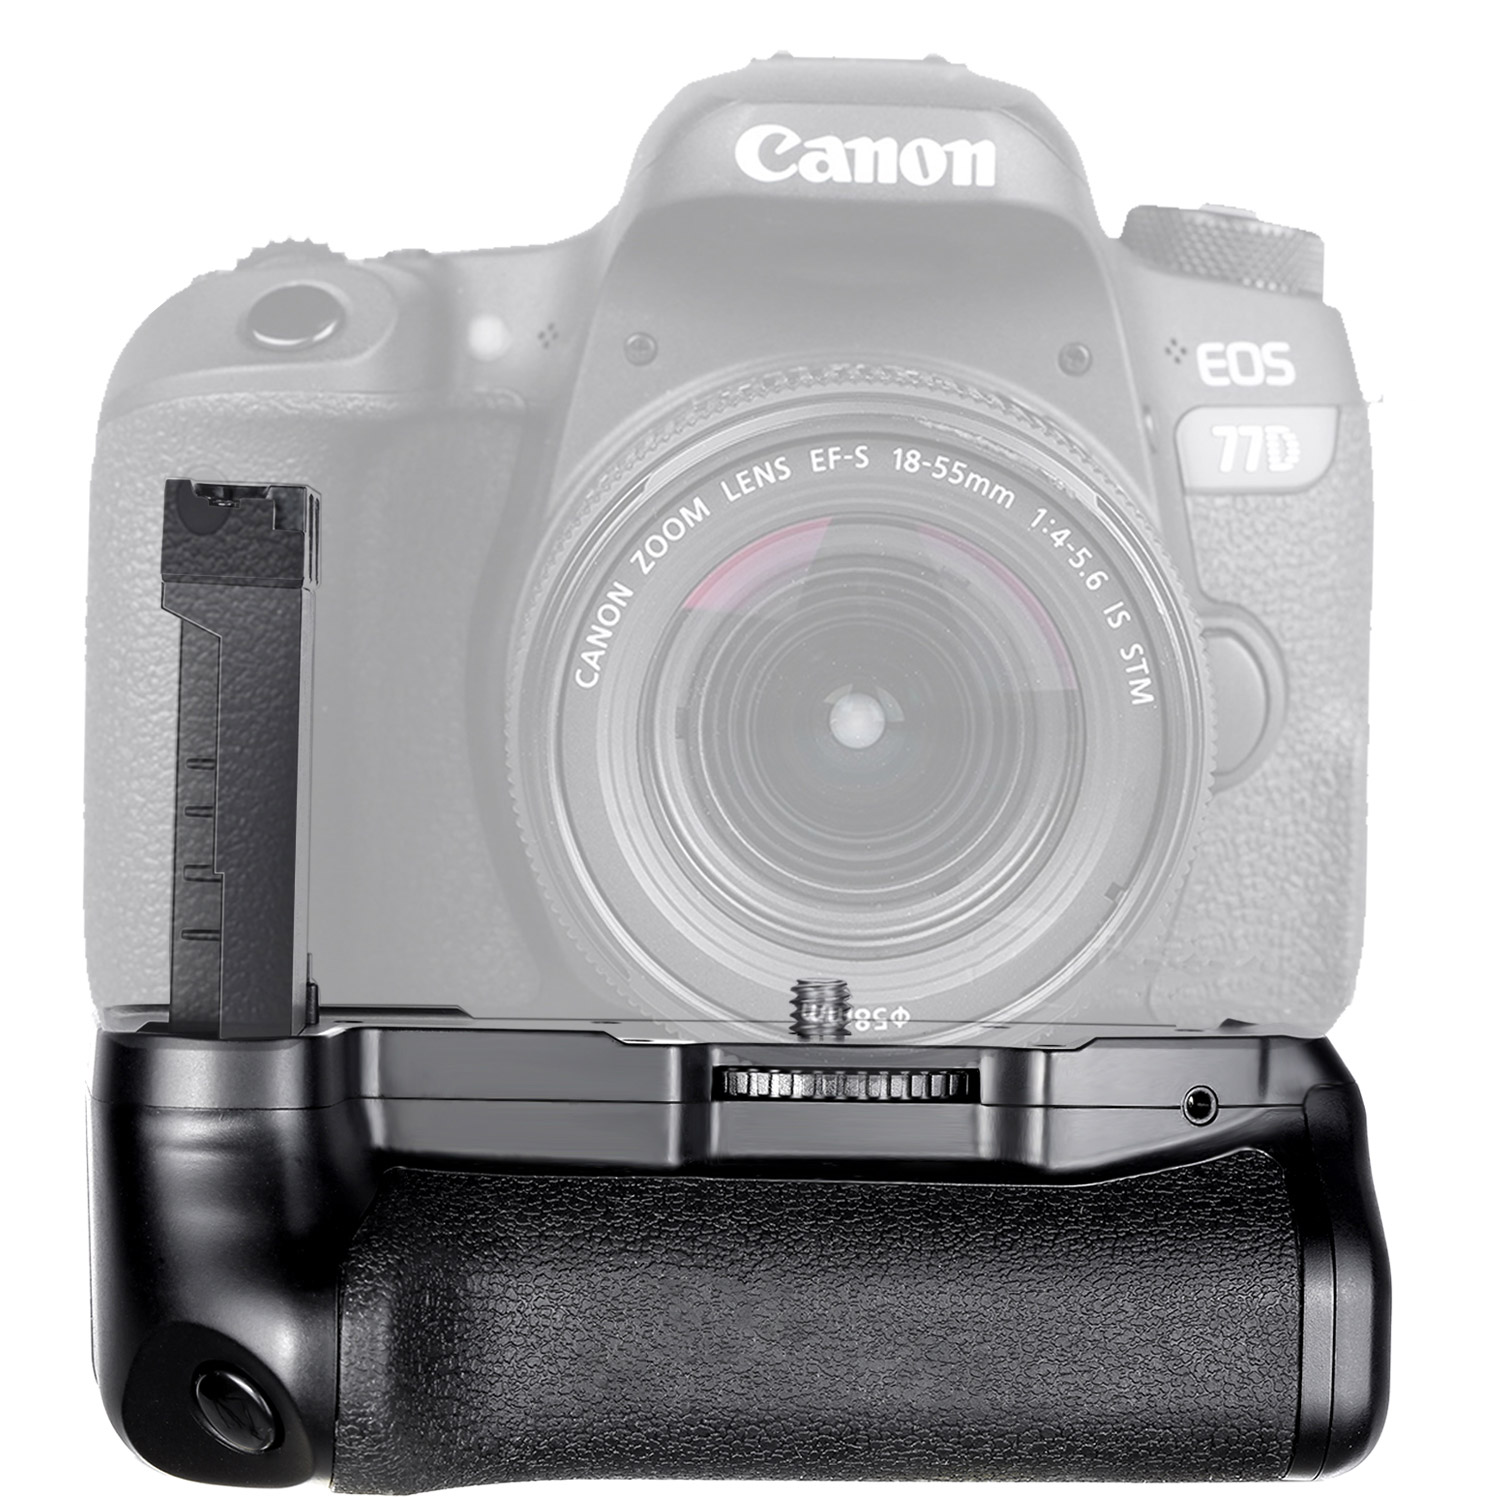 Details about New Professional Battery Grip for Canon EOS 800D/Rebel  T7i/77D as BG-1X